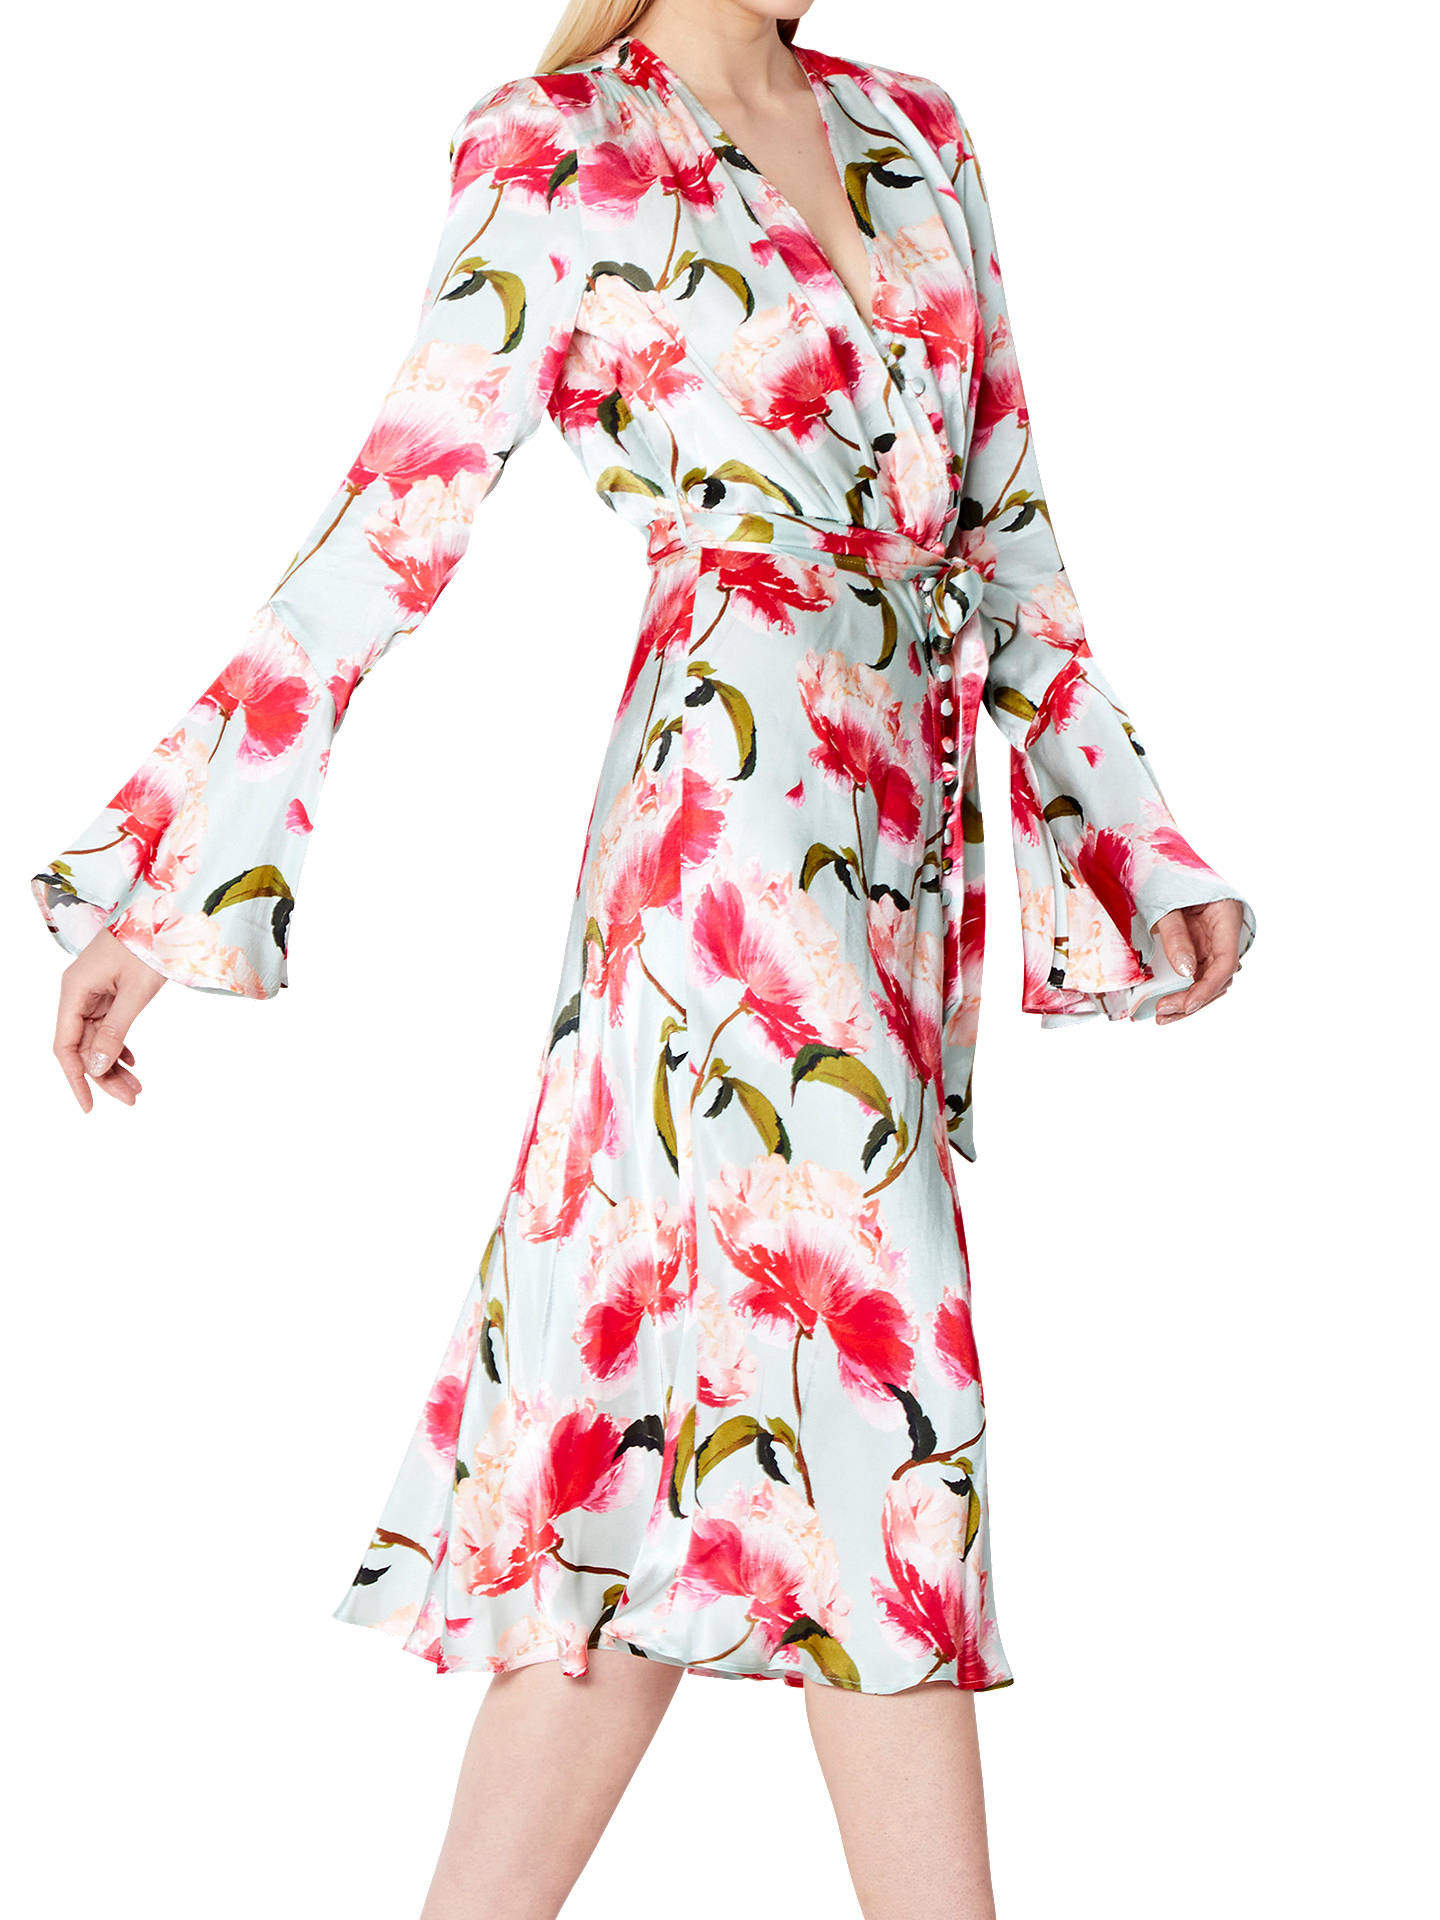 BuyGhost Annabelle Satin Dress, Sabella, XXS Online at johnlewis.com